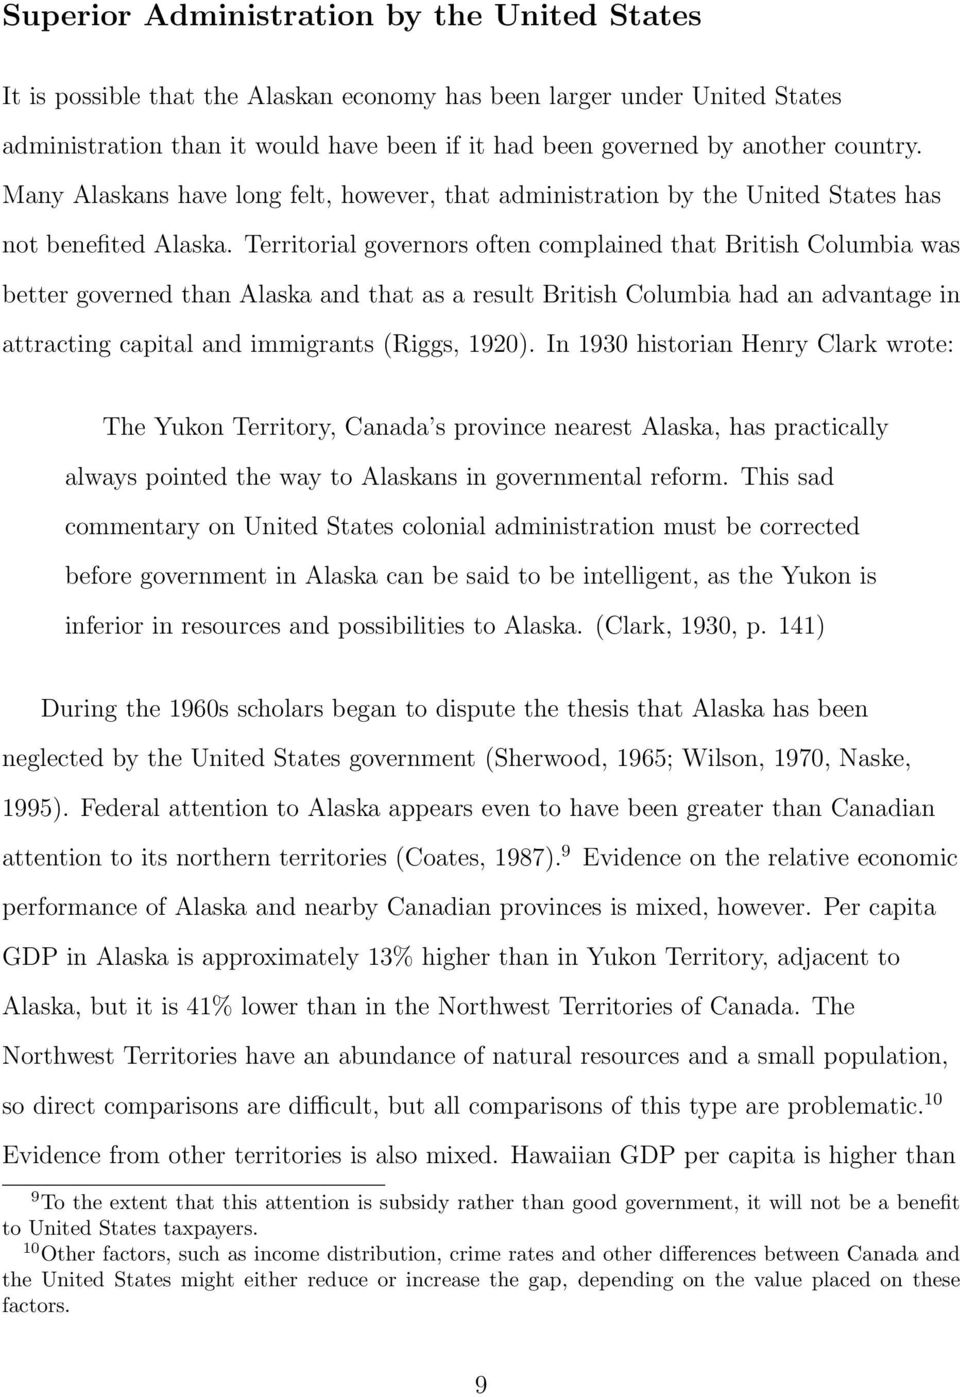 Territorial governors often complained that British Columbia was better governed than Alaska and that as a result British Columbia had an advantage in attracting capital and immigrants (Riggs, 1920).